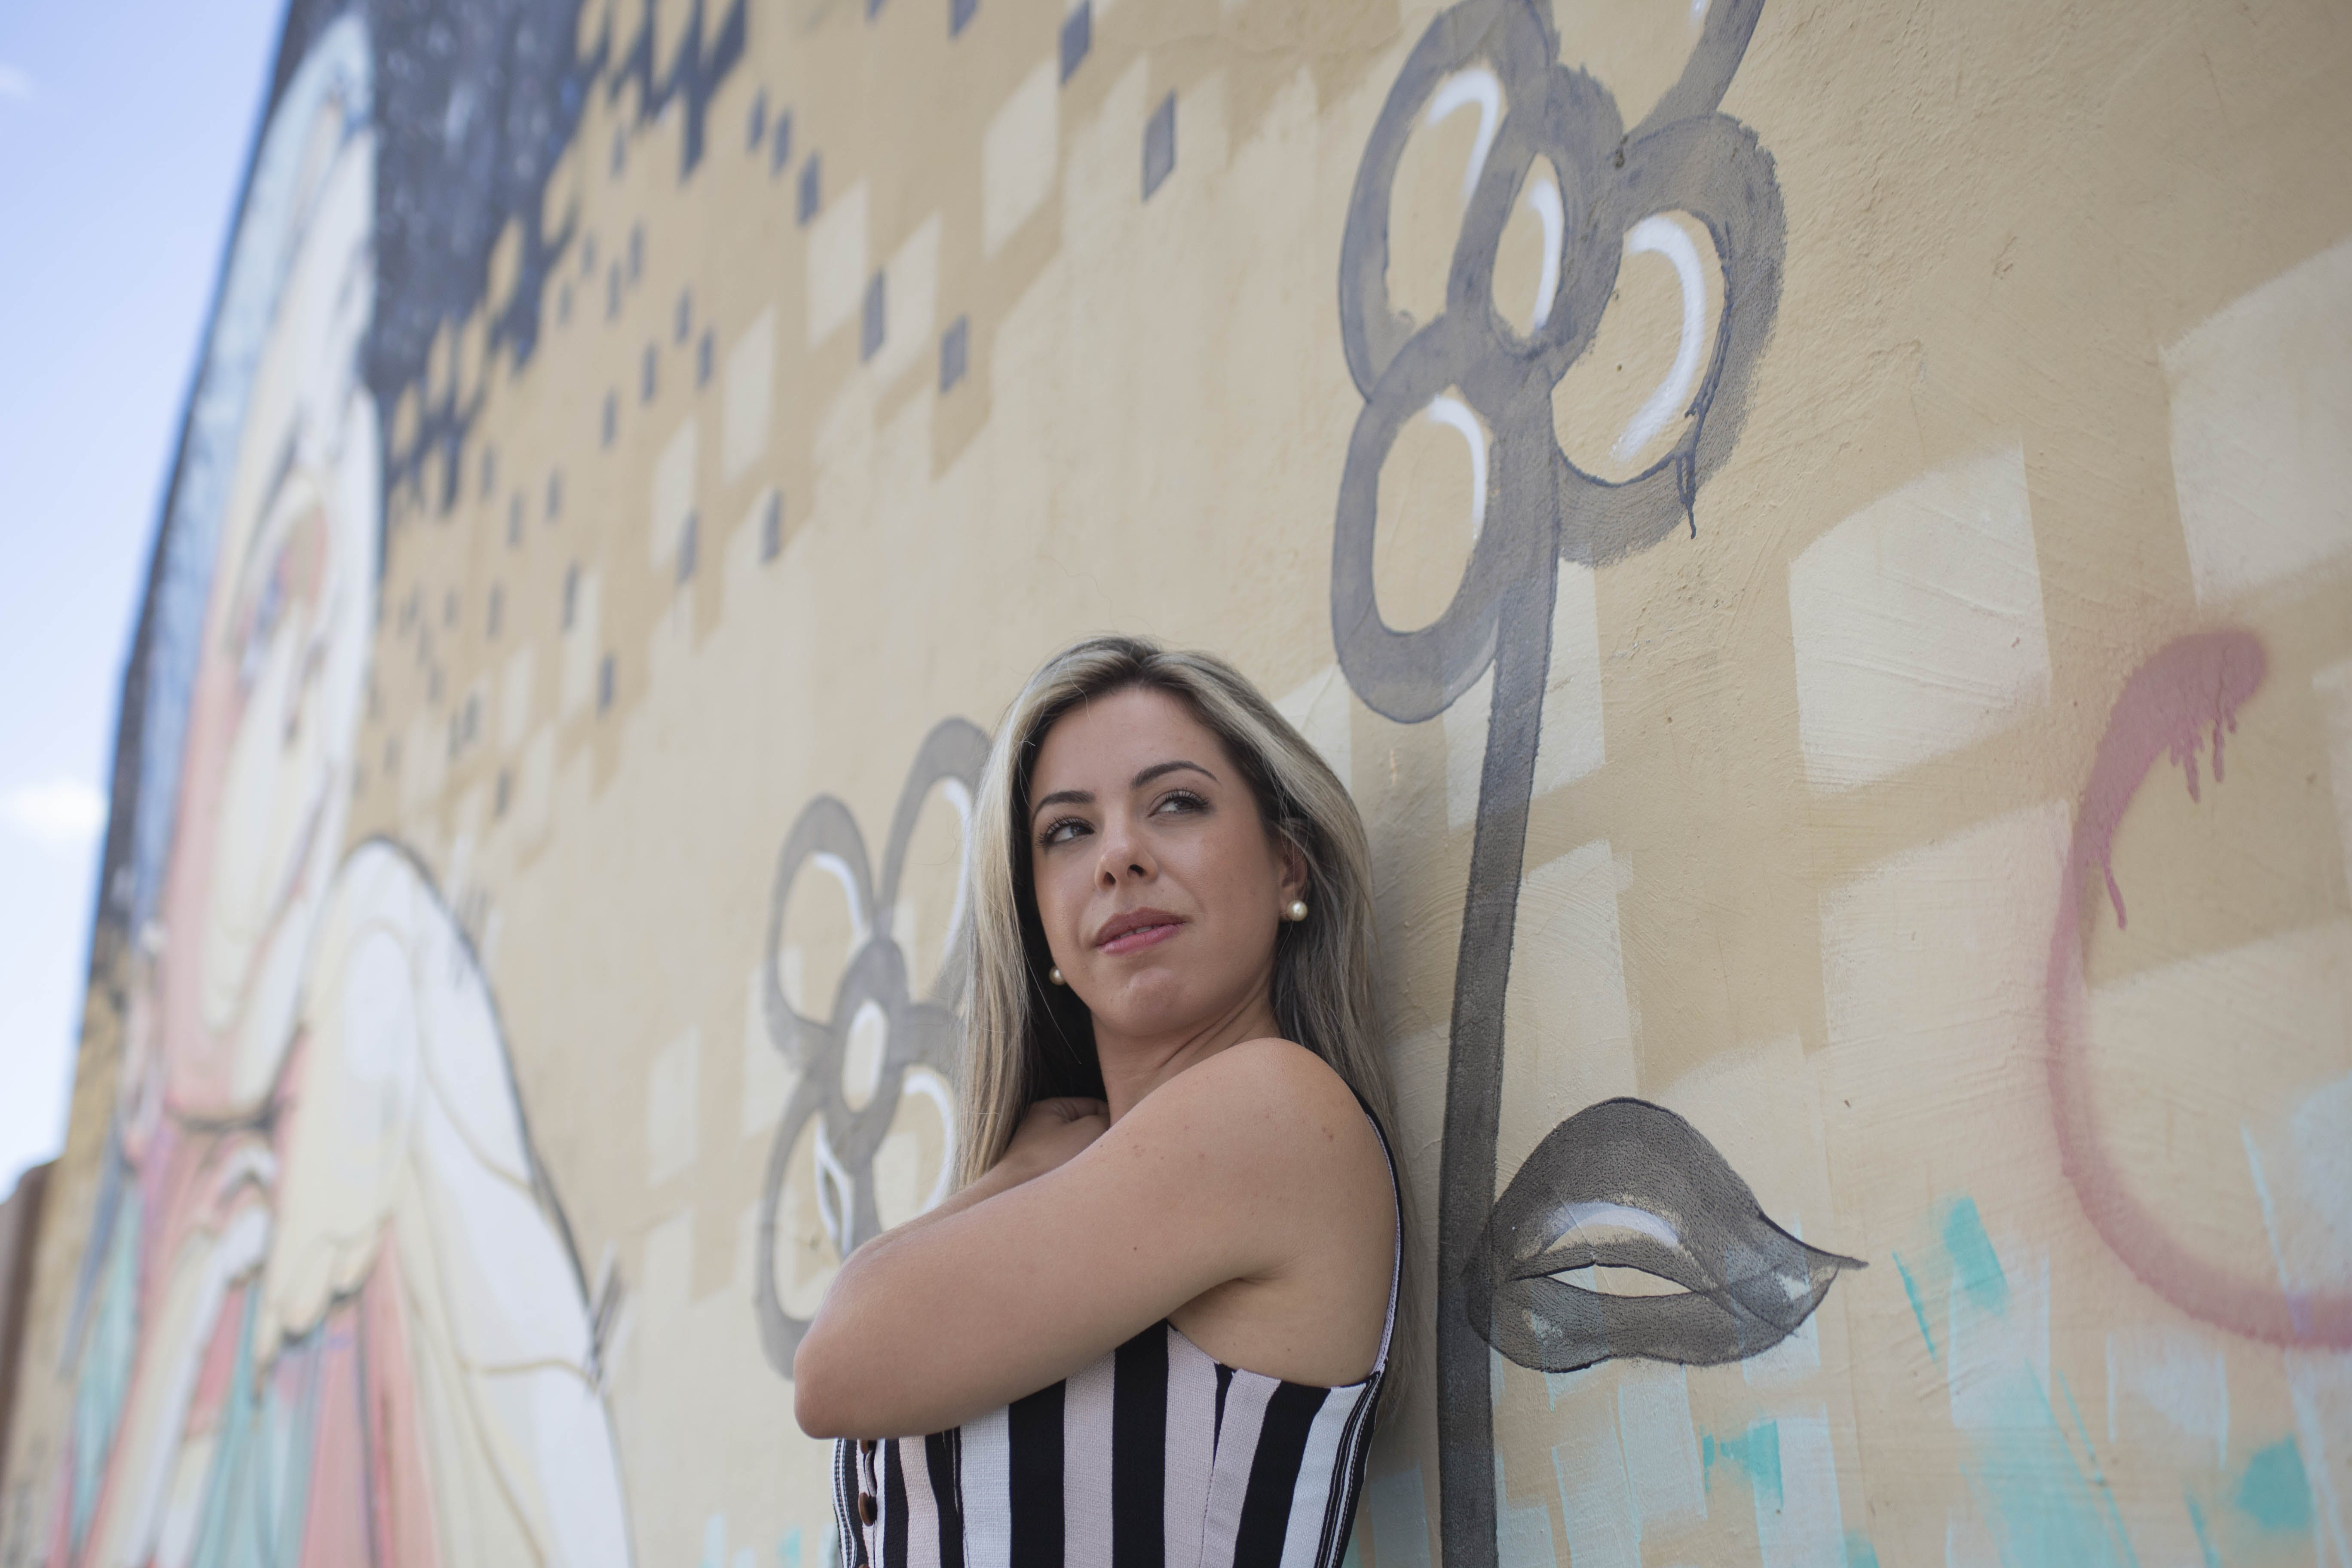 Standing Woman While Leaning on Graffiti Wall